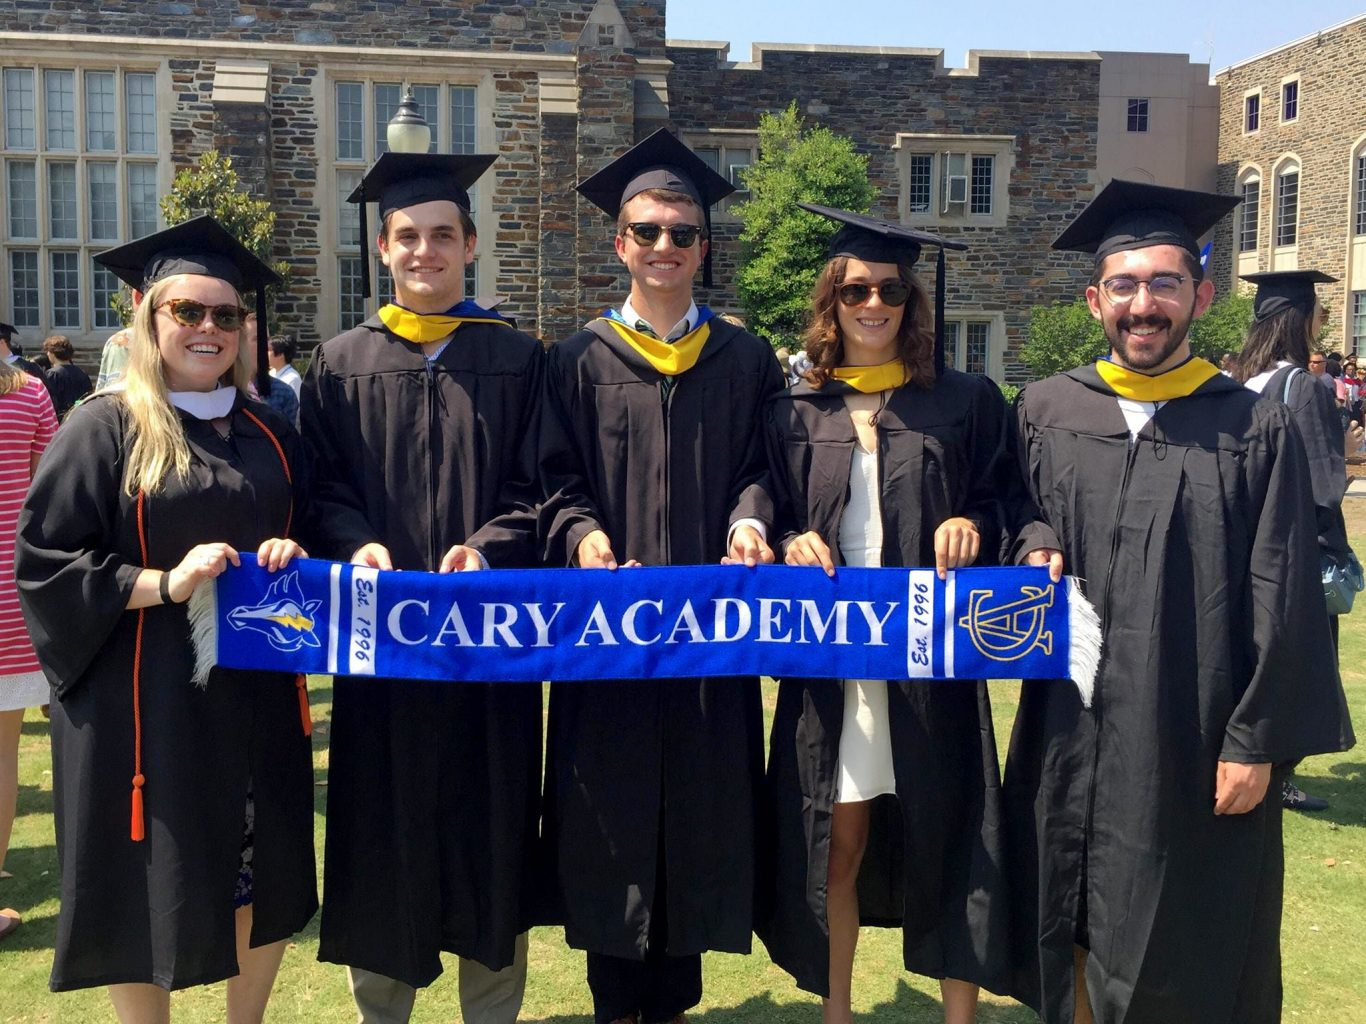 Cary Academy alumni graduating from Duke University